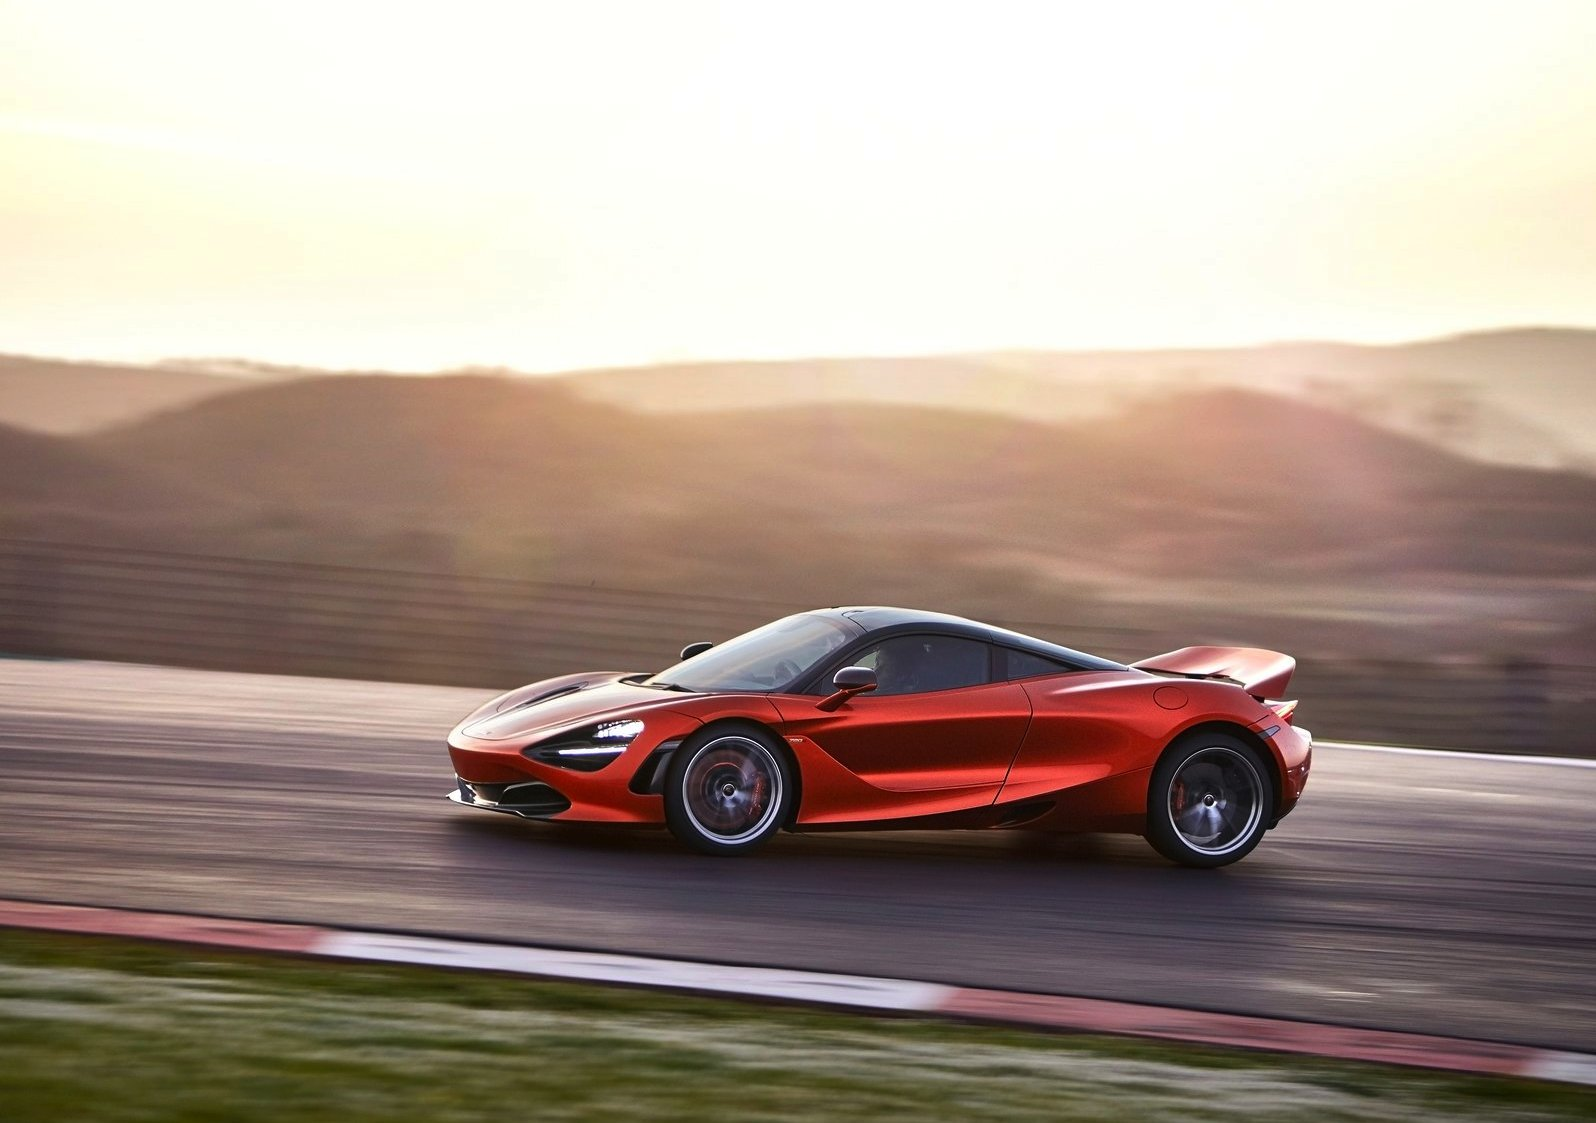 /data/MediaLibrary/articles/11177/mclaren-720s.jpg